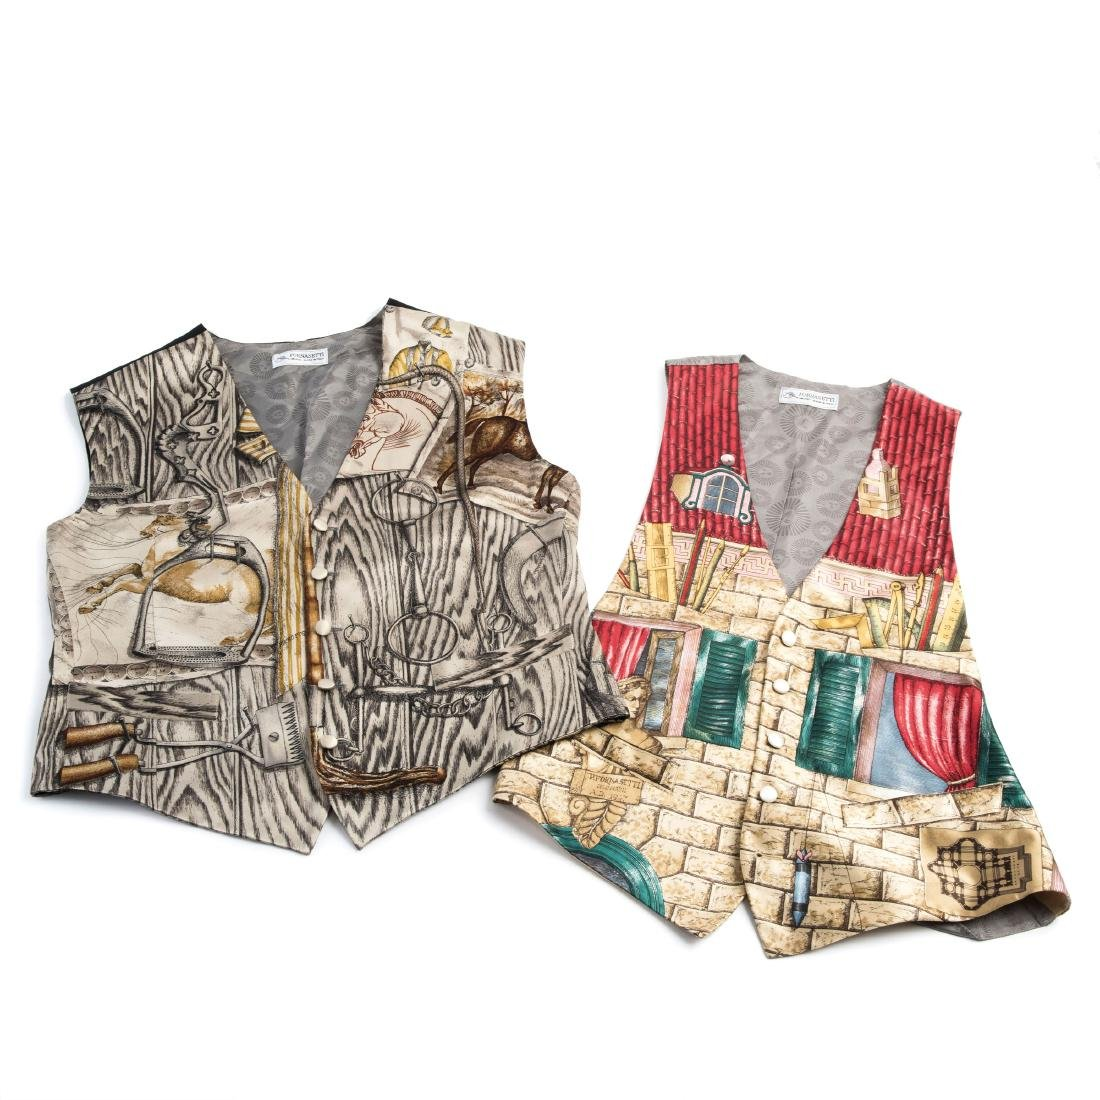 Two waistcoats, 'Architetto' and 'Cavallo', 1990s